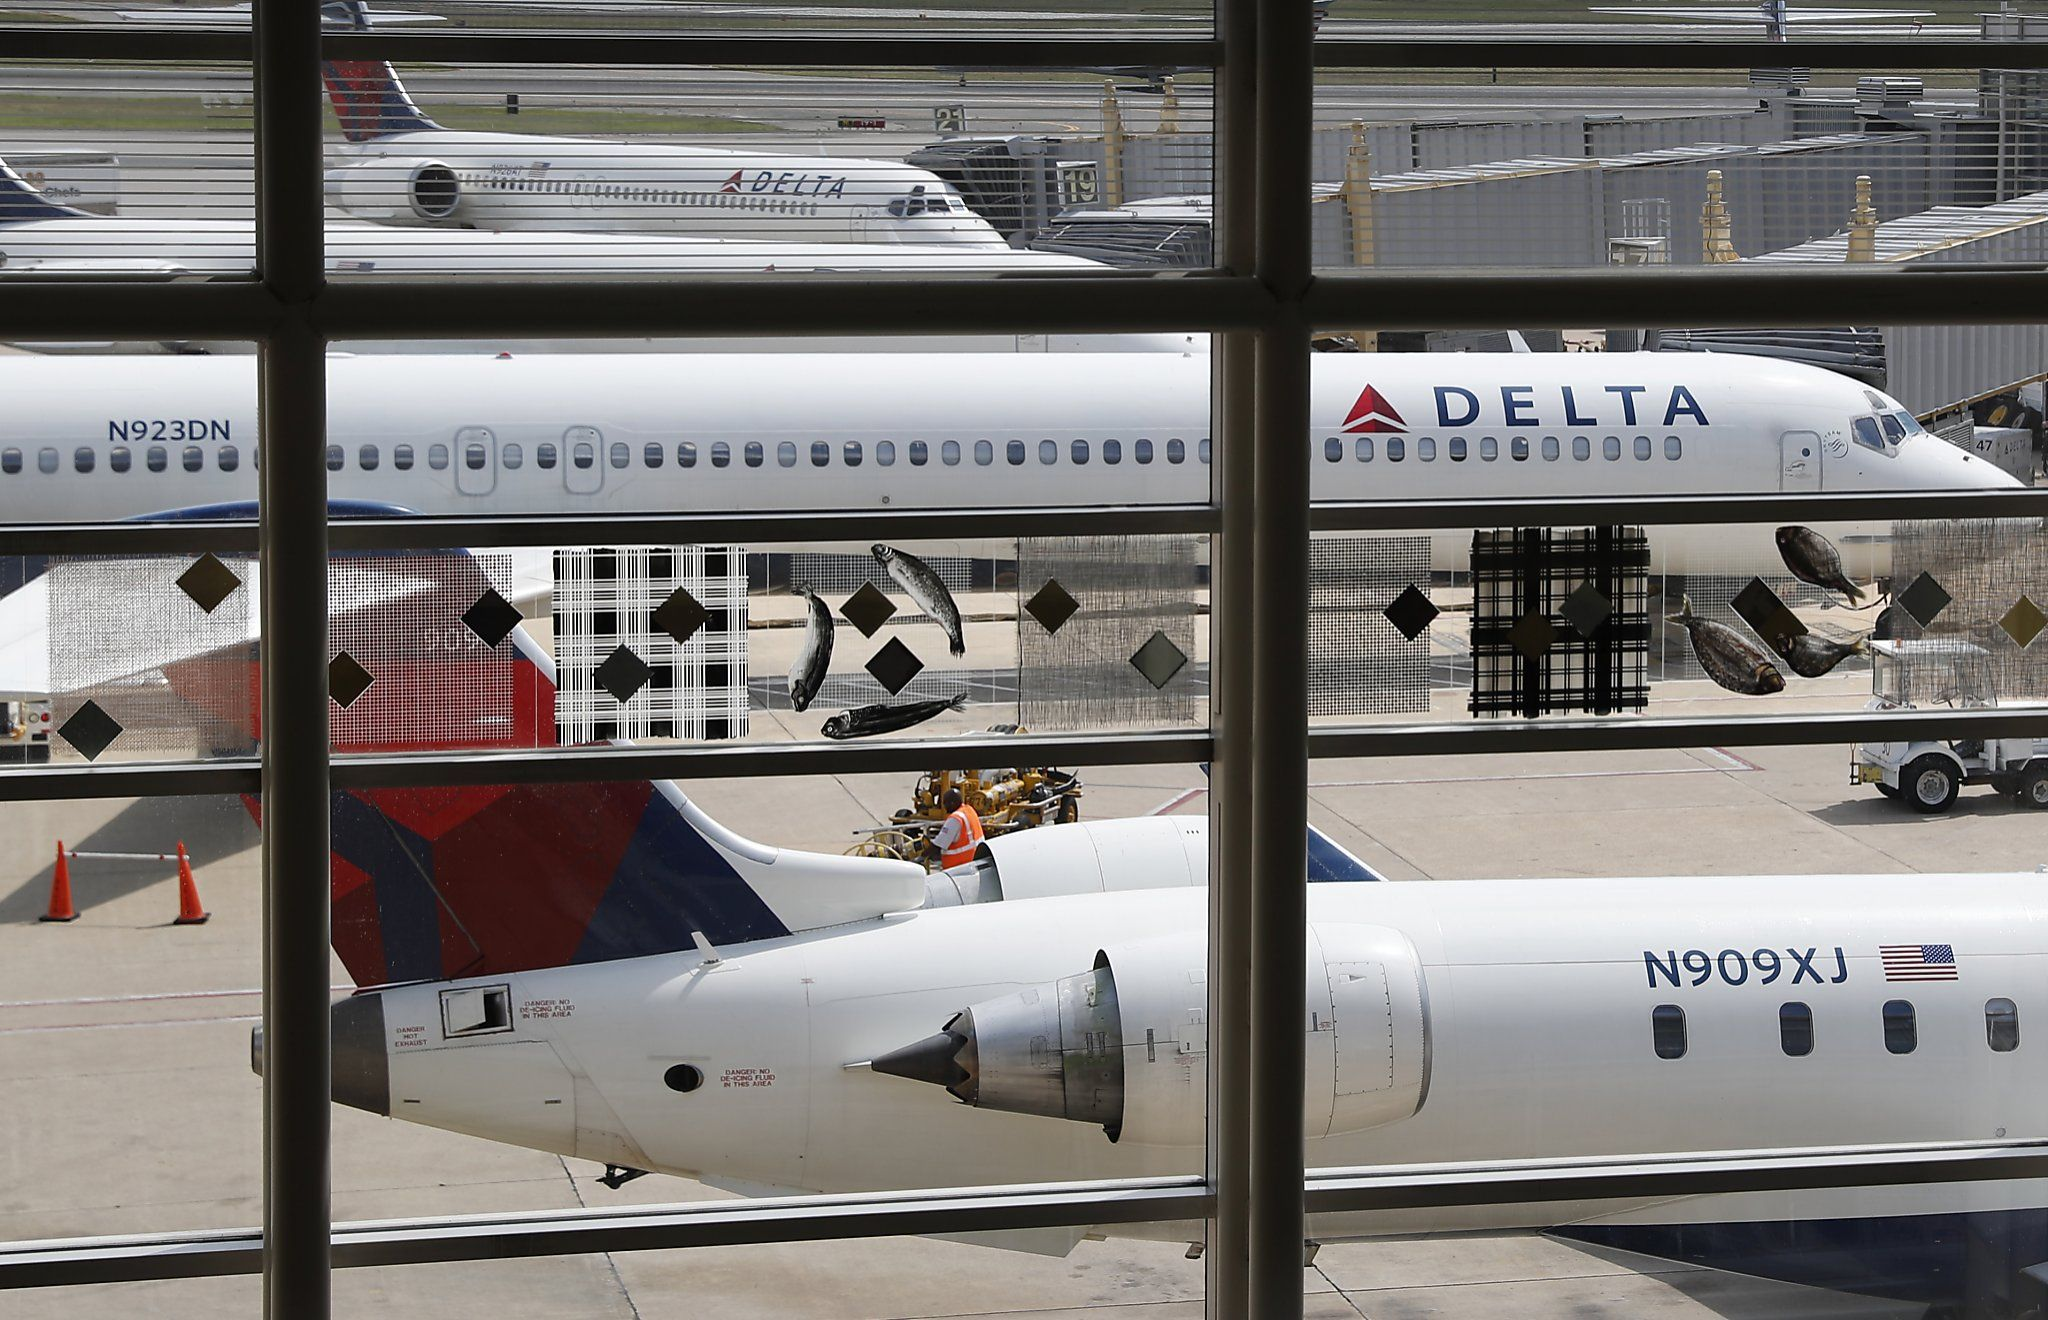 Delta's U.S. Grounding Lifted After Latest Computer Glitch